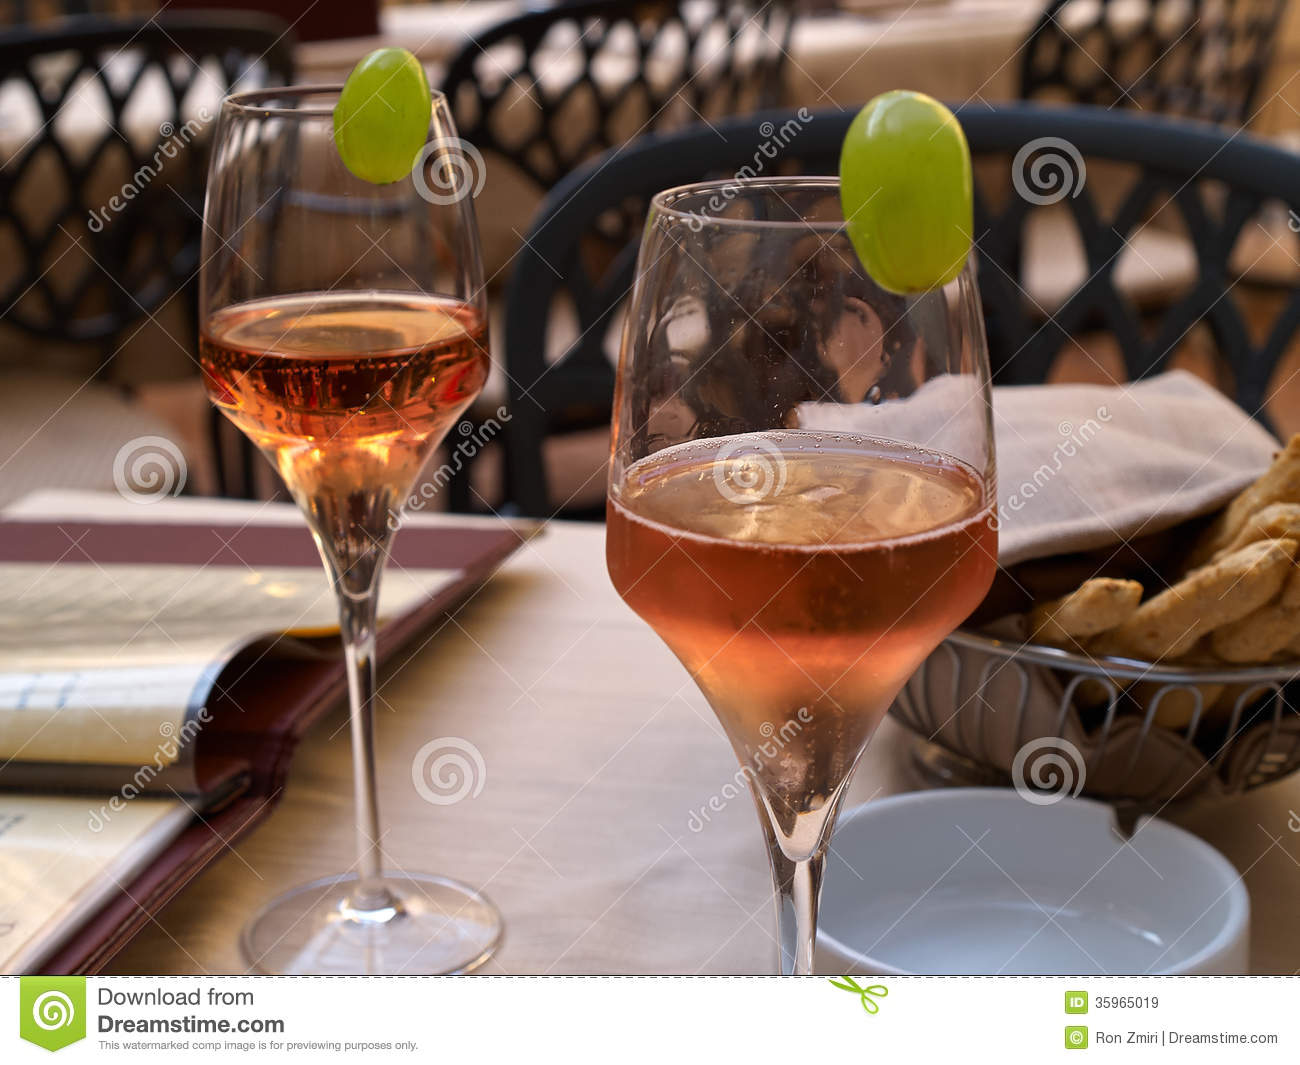 spritz aperitif in italy royalty free stock images image 35965019. Black Bedroom Furniture Sets. Home Design Ideas